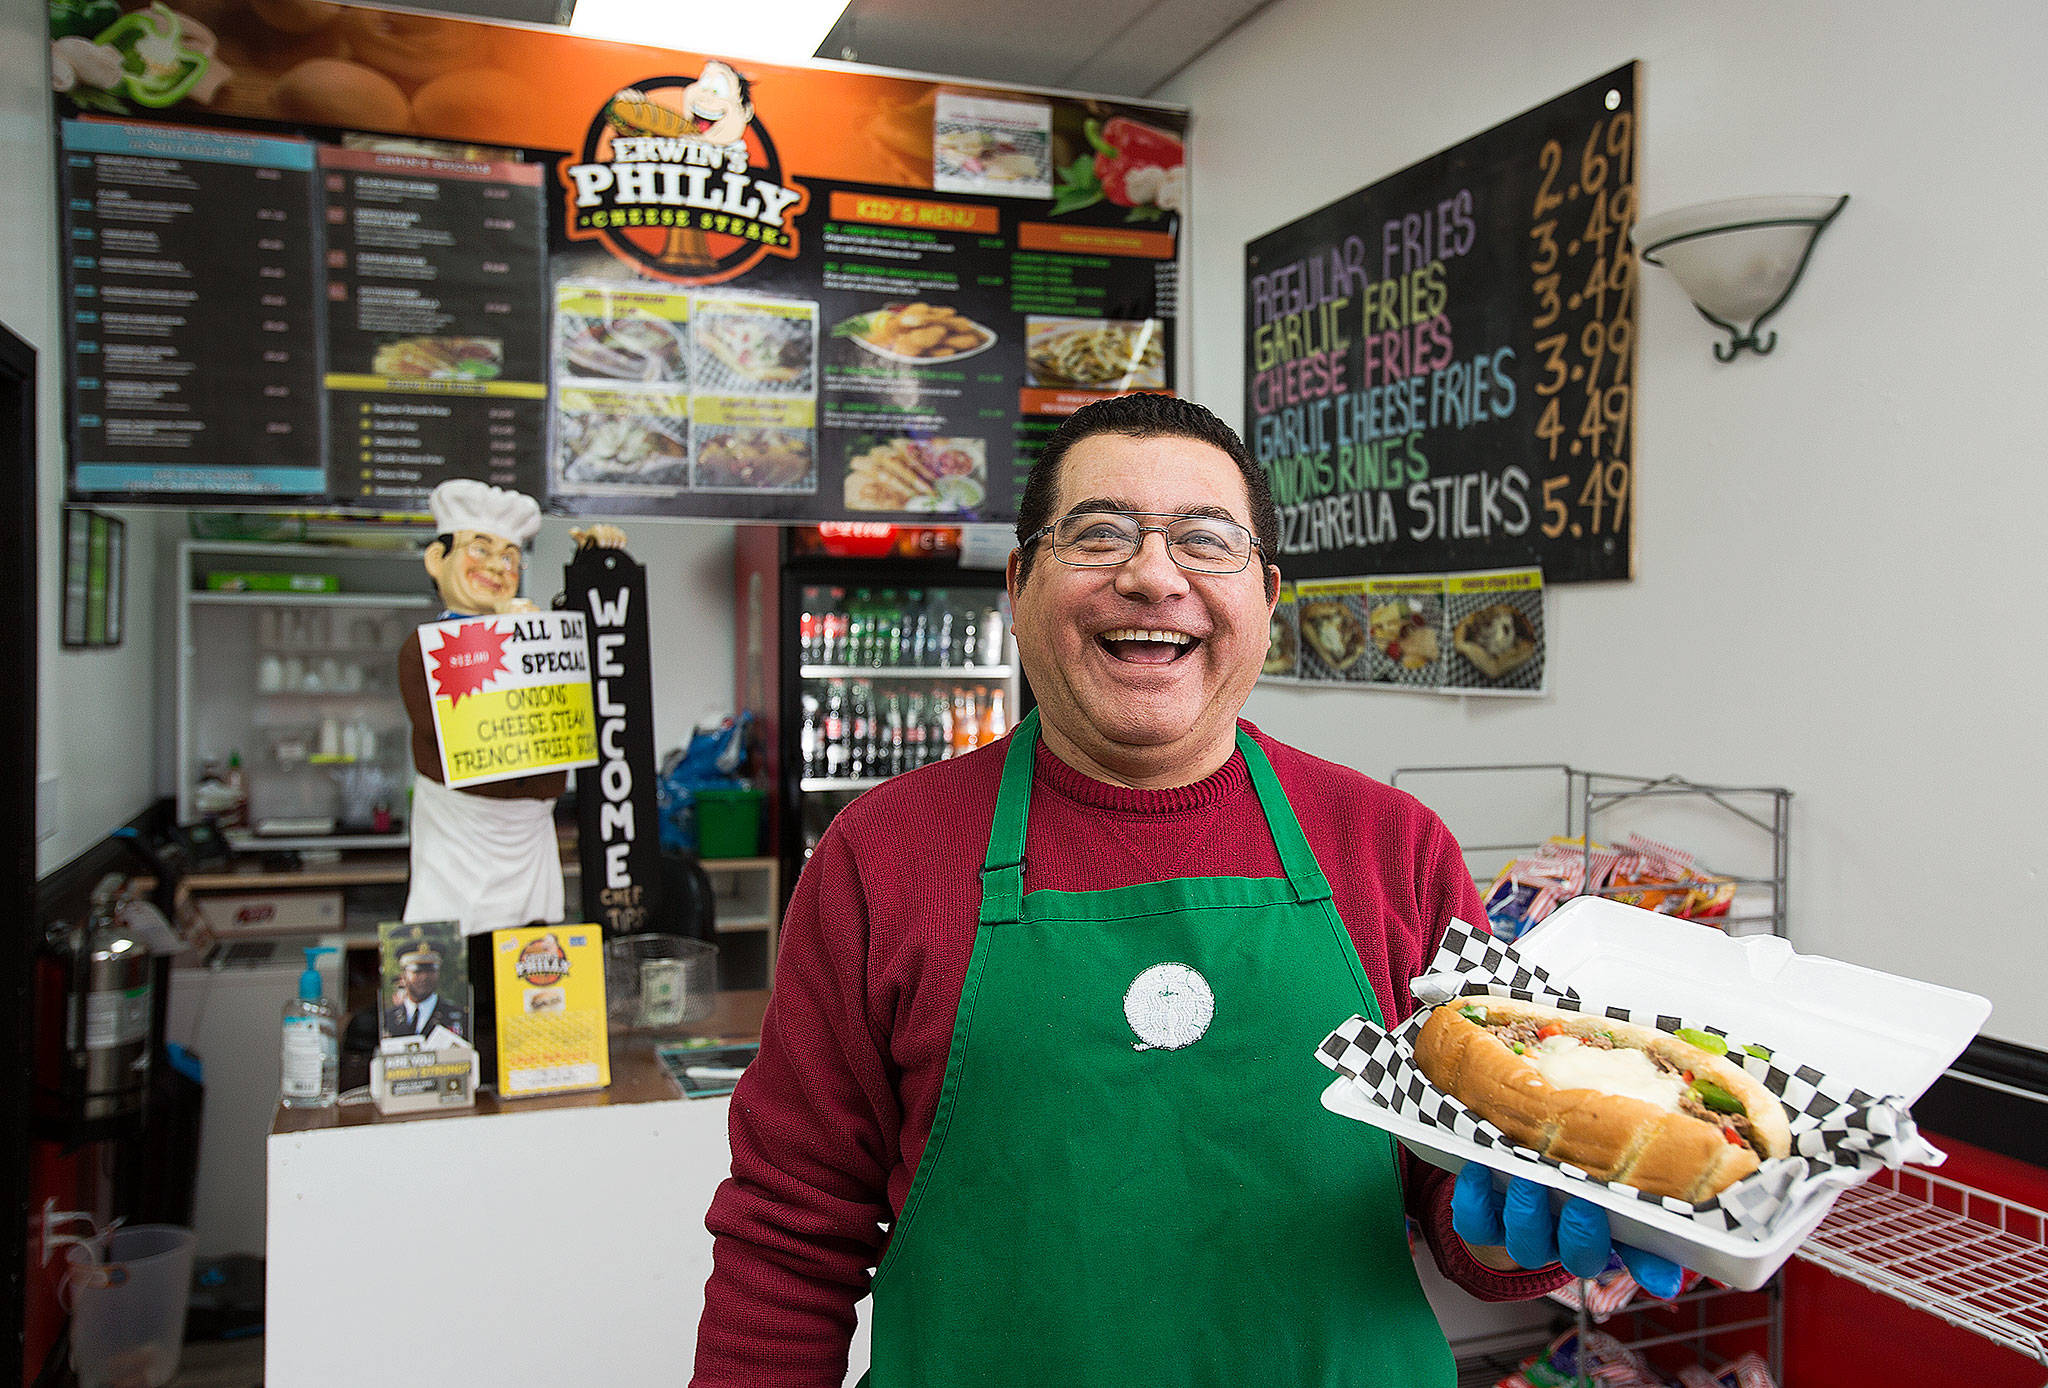 Erwin Sanchez, owner of Erwin's Philly Cheese Steak, holds up one of the selections from the menu at his Everett restaurant. (Andy Bronson / The Herald)